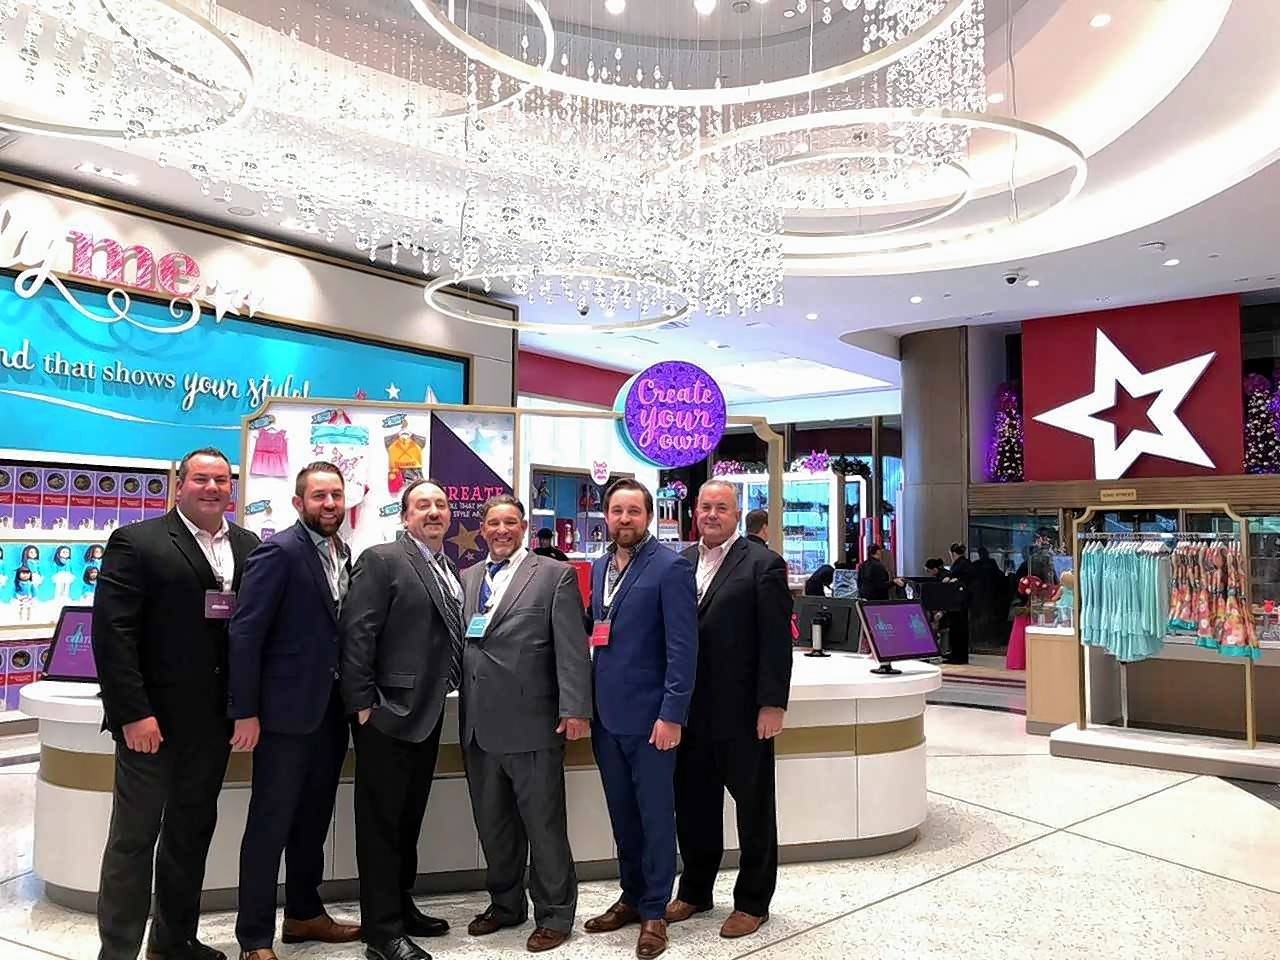 Englewood Construction completed the build-out of the new American Girl Place New York at 75 Rockefeller Plaza. Members of the Englewood team who attended the grand opening included (left to right): Chuck Taylor, director of operations; Andy Achino, project engineer, facilities division; David Arnolde, director of construction and project manager; Ira Stroud, project superintendent; Corey Achino, project manager, facilities division; and William Di Santo, president.